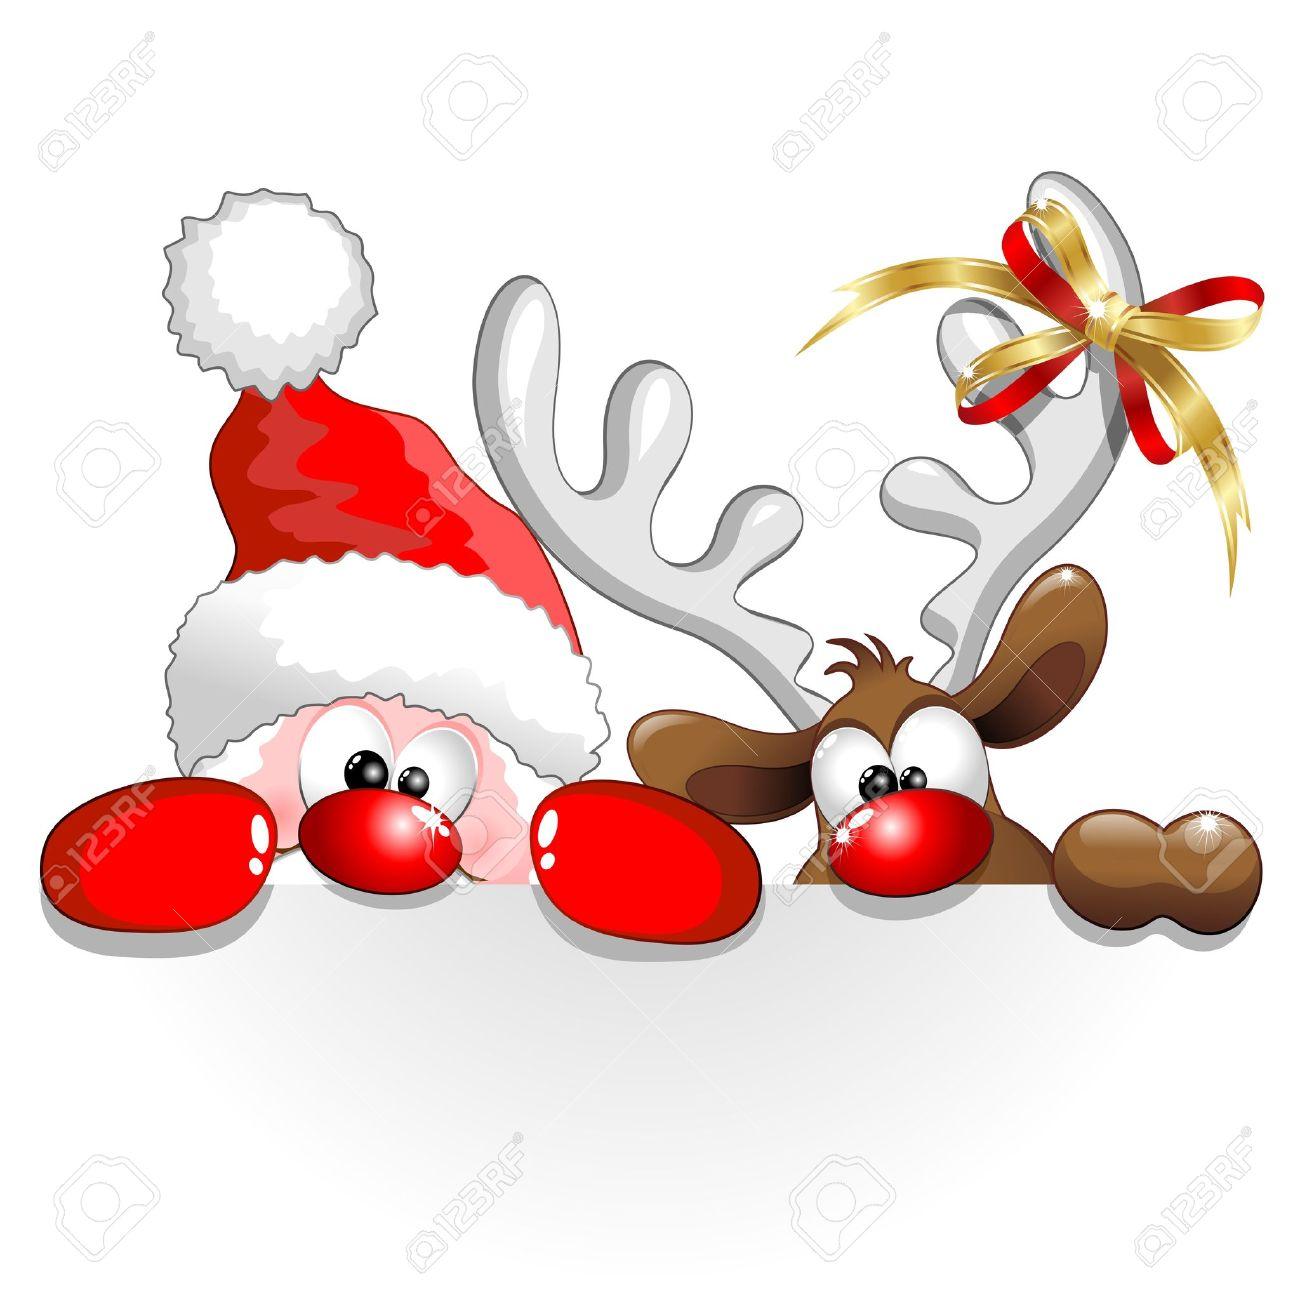 Funny Christmas Santa And Reindeer Cartoon Stock Vector   22281236